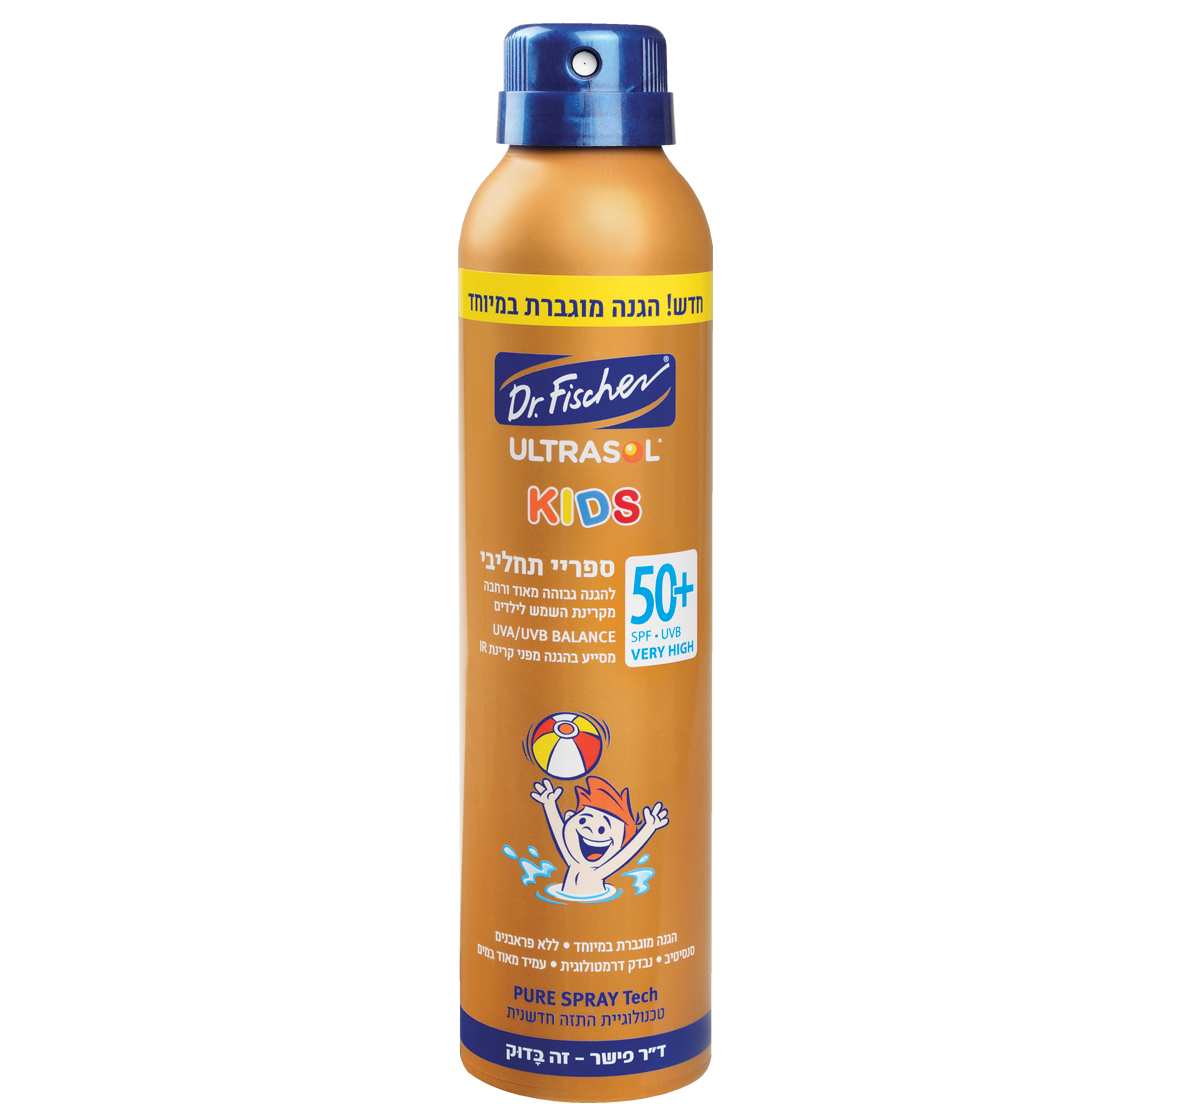 E_ultrasol_kids_SPF50plus_1184x1104